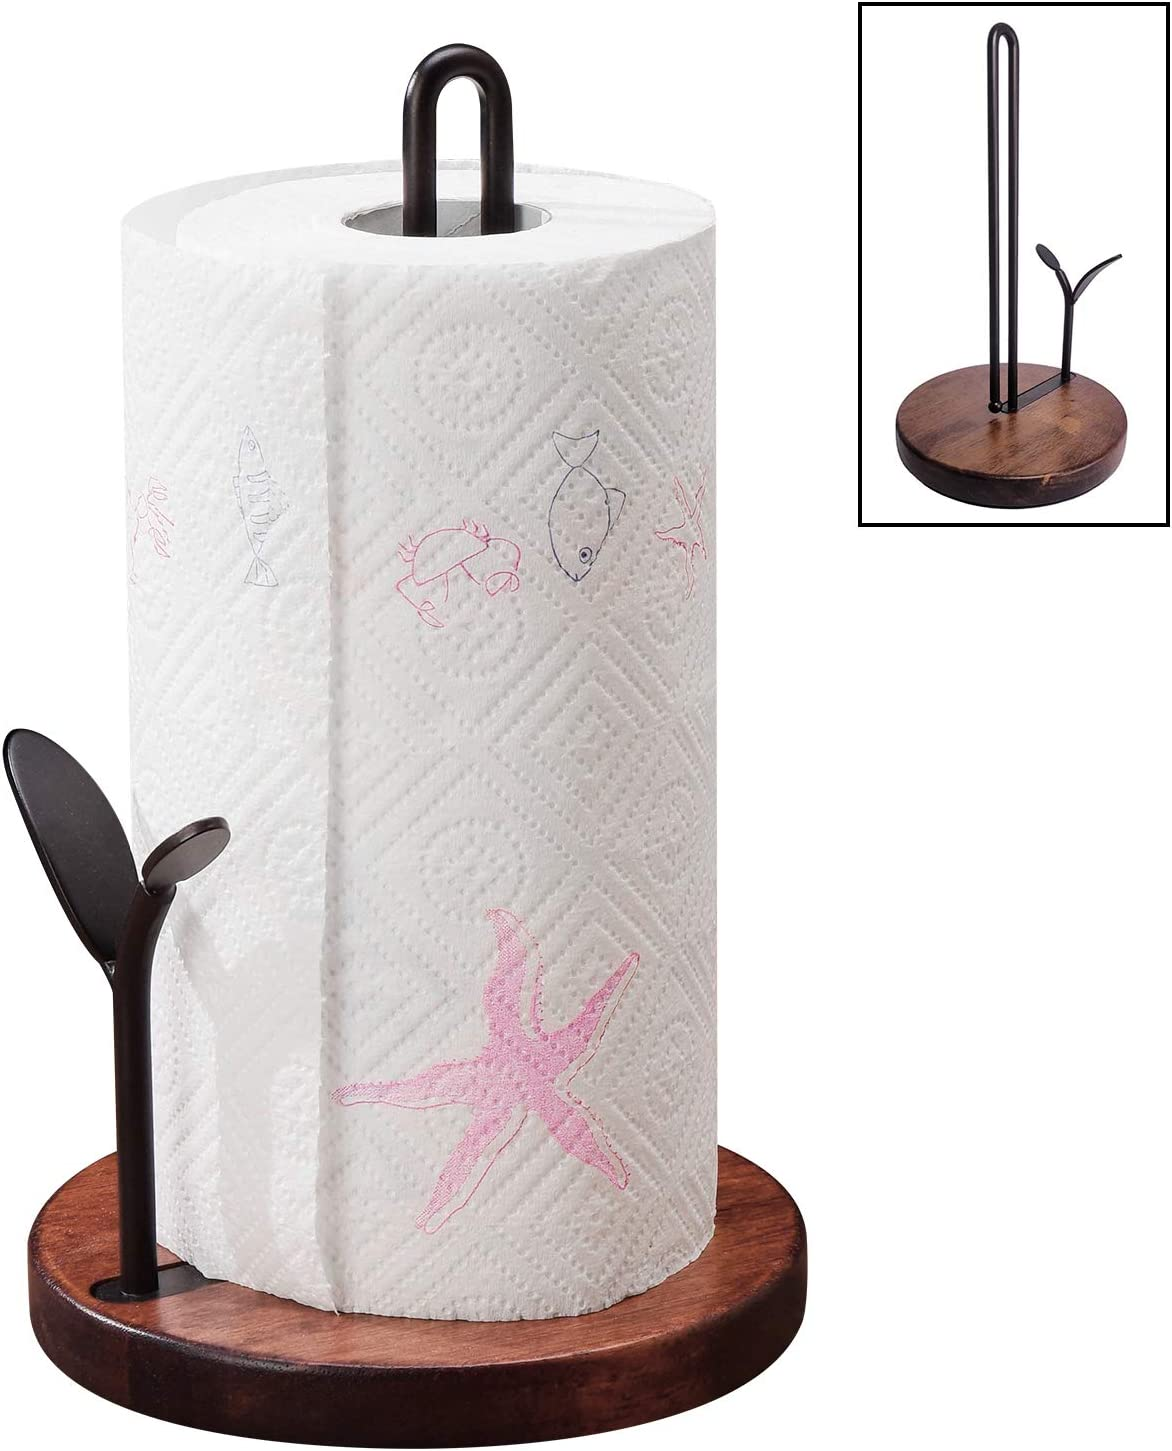 Paper Towel Holder YIWANFW Base Online limited product Ru Elegant Stand Wood